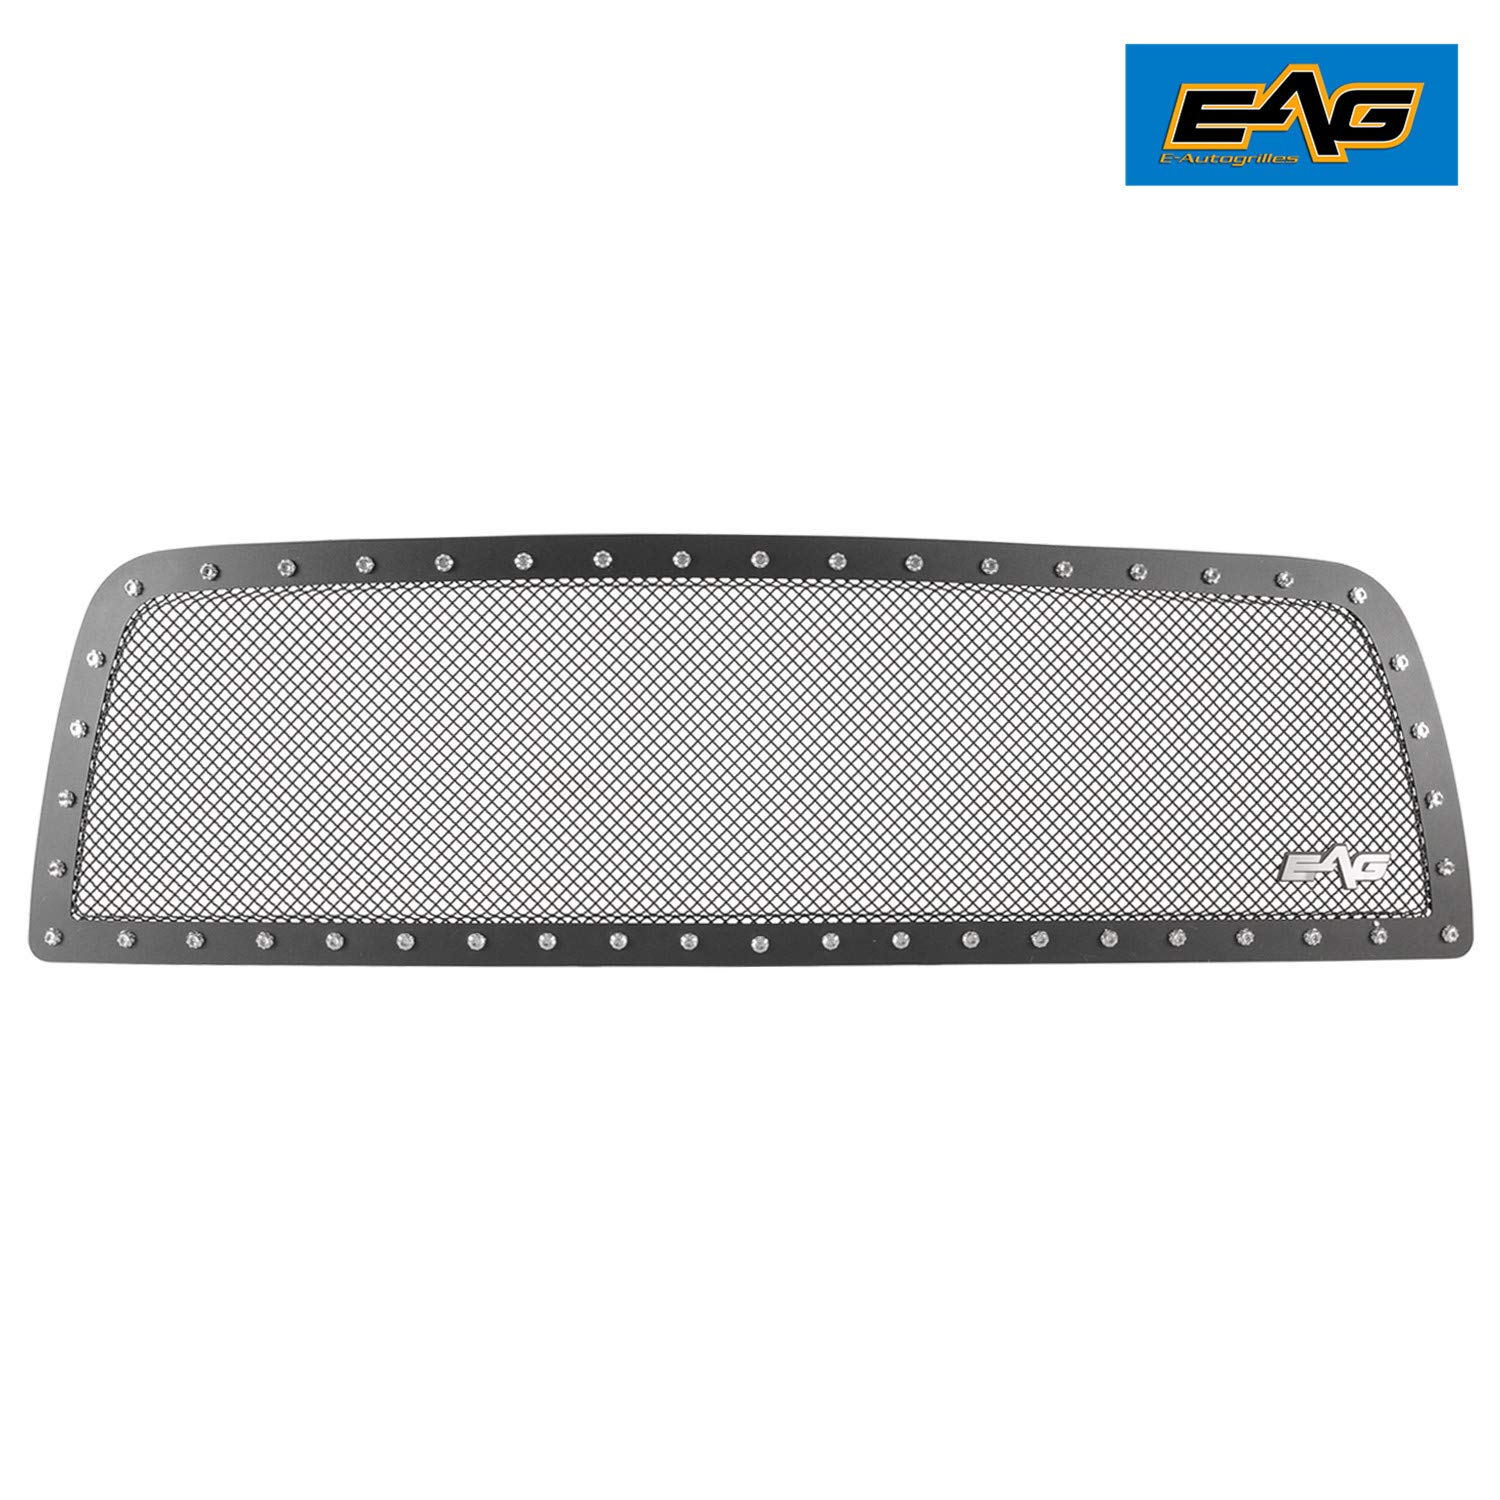 EAG Rivet Black Stainless Steel Wire Mesh Grille with 3 LED Lights Fit for 09-12 Dodge Ram 1500 1PC